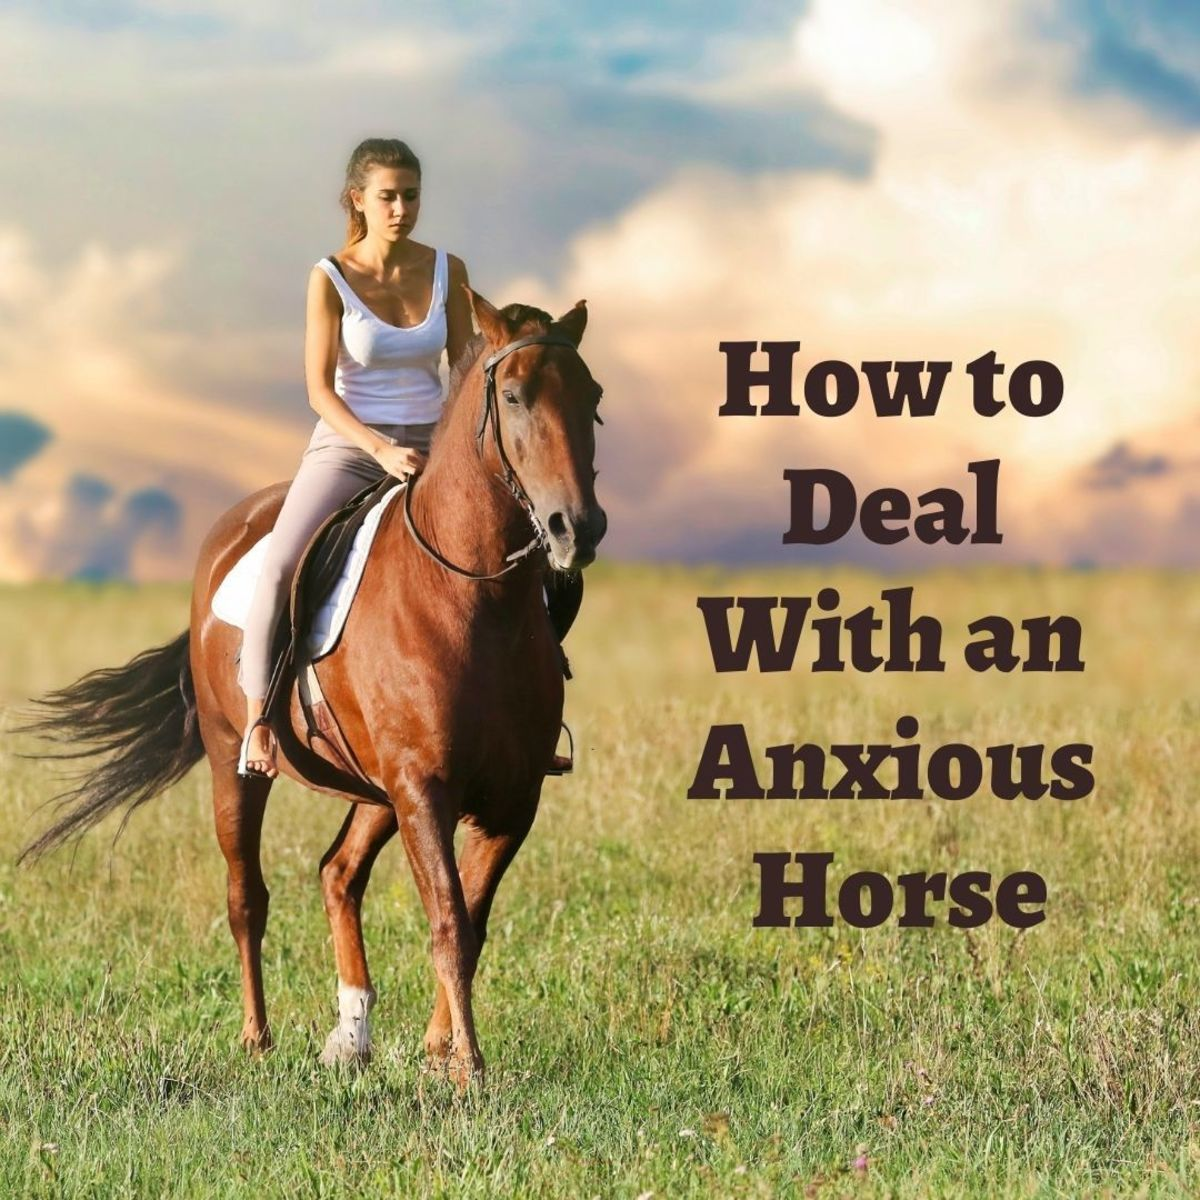 How to deal with anxious and nervous horses